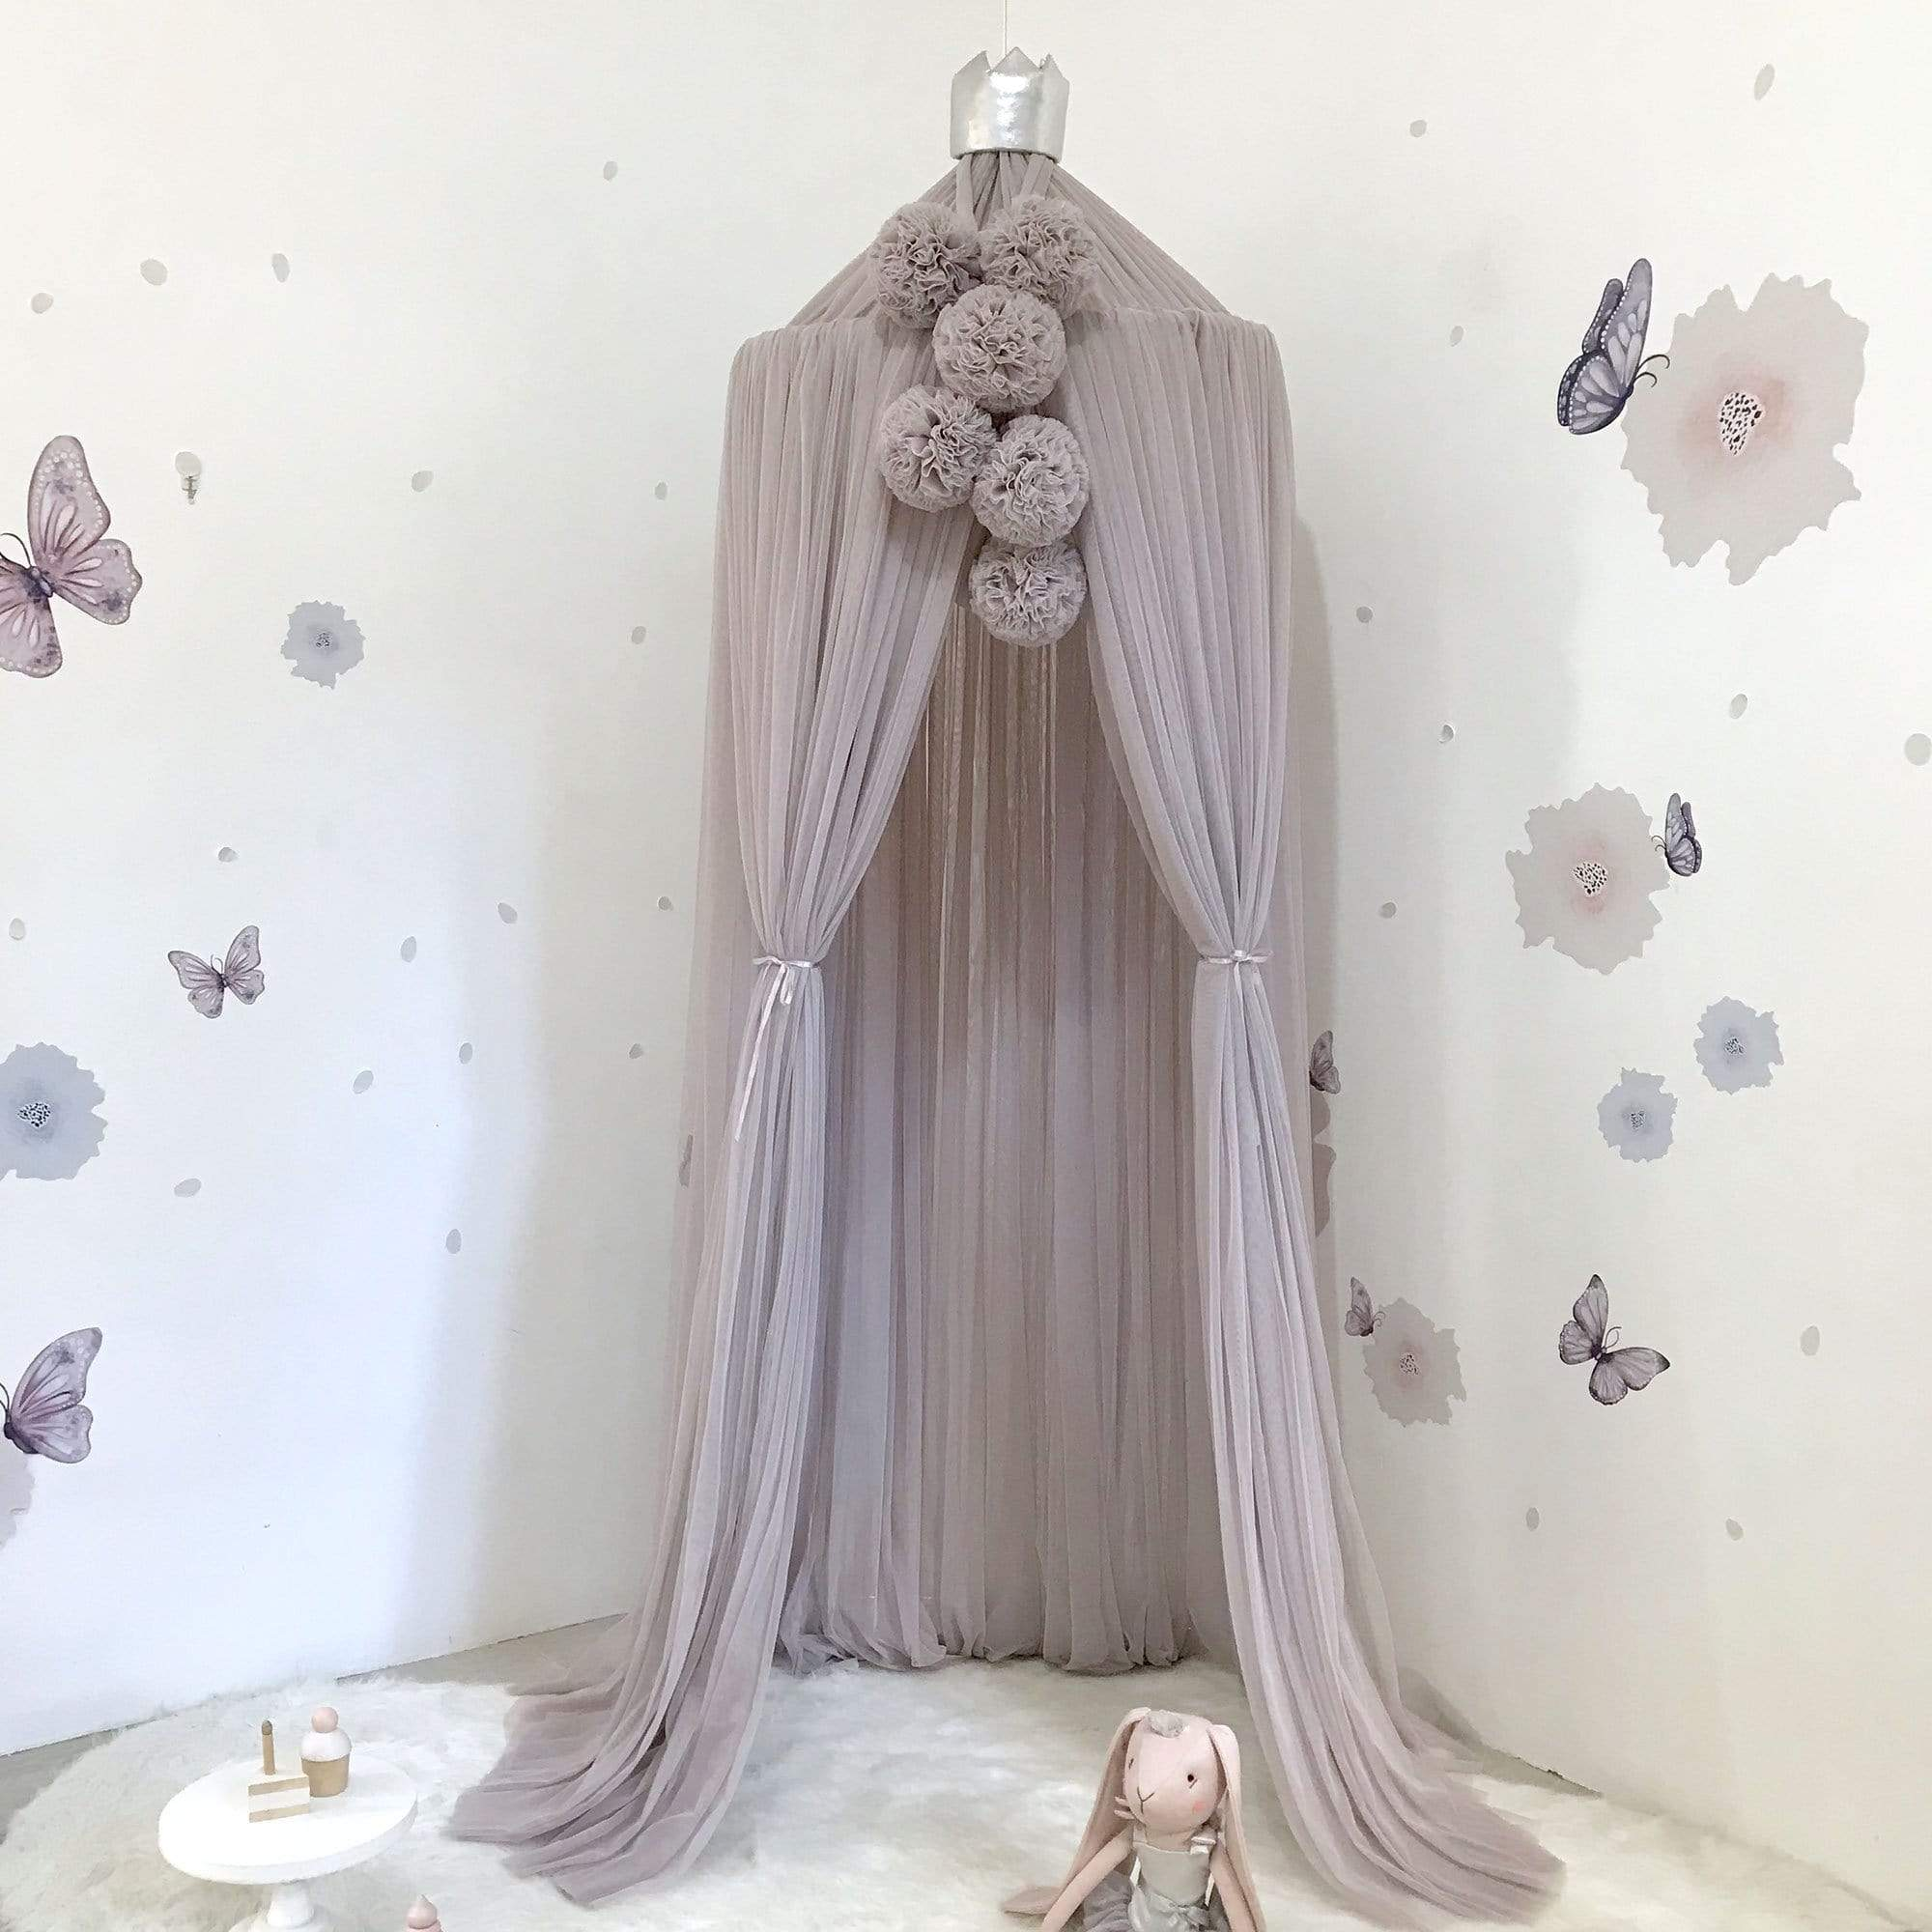 Raspberry Lane Boutique Dreamy Canopy - Oyster